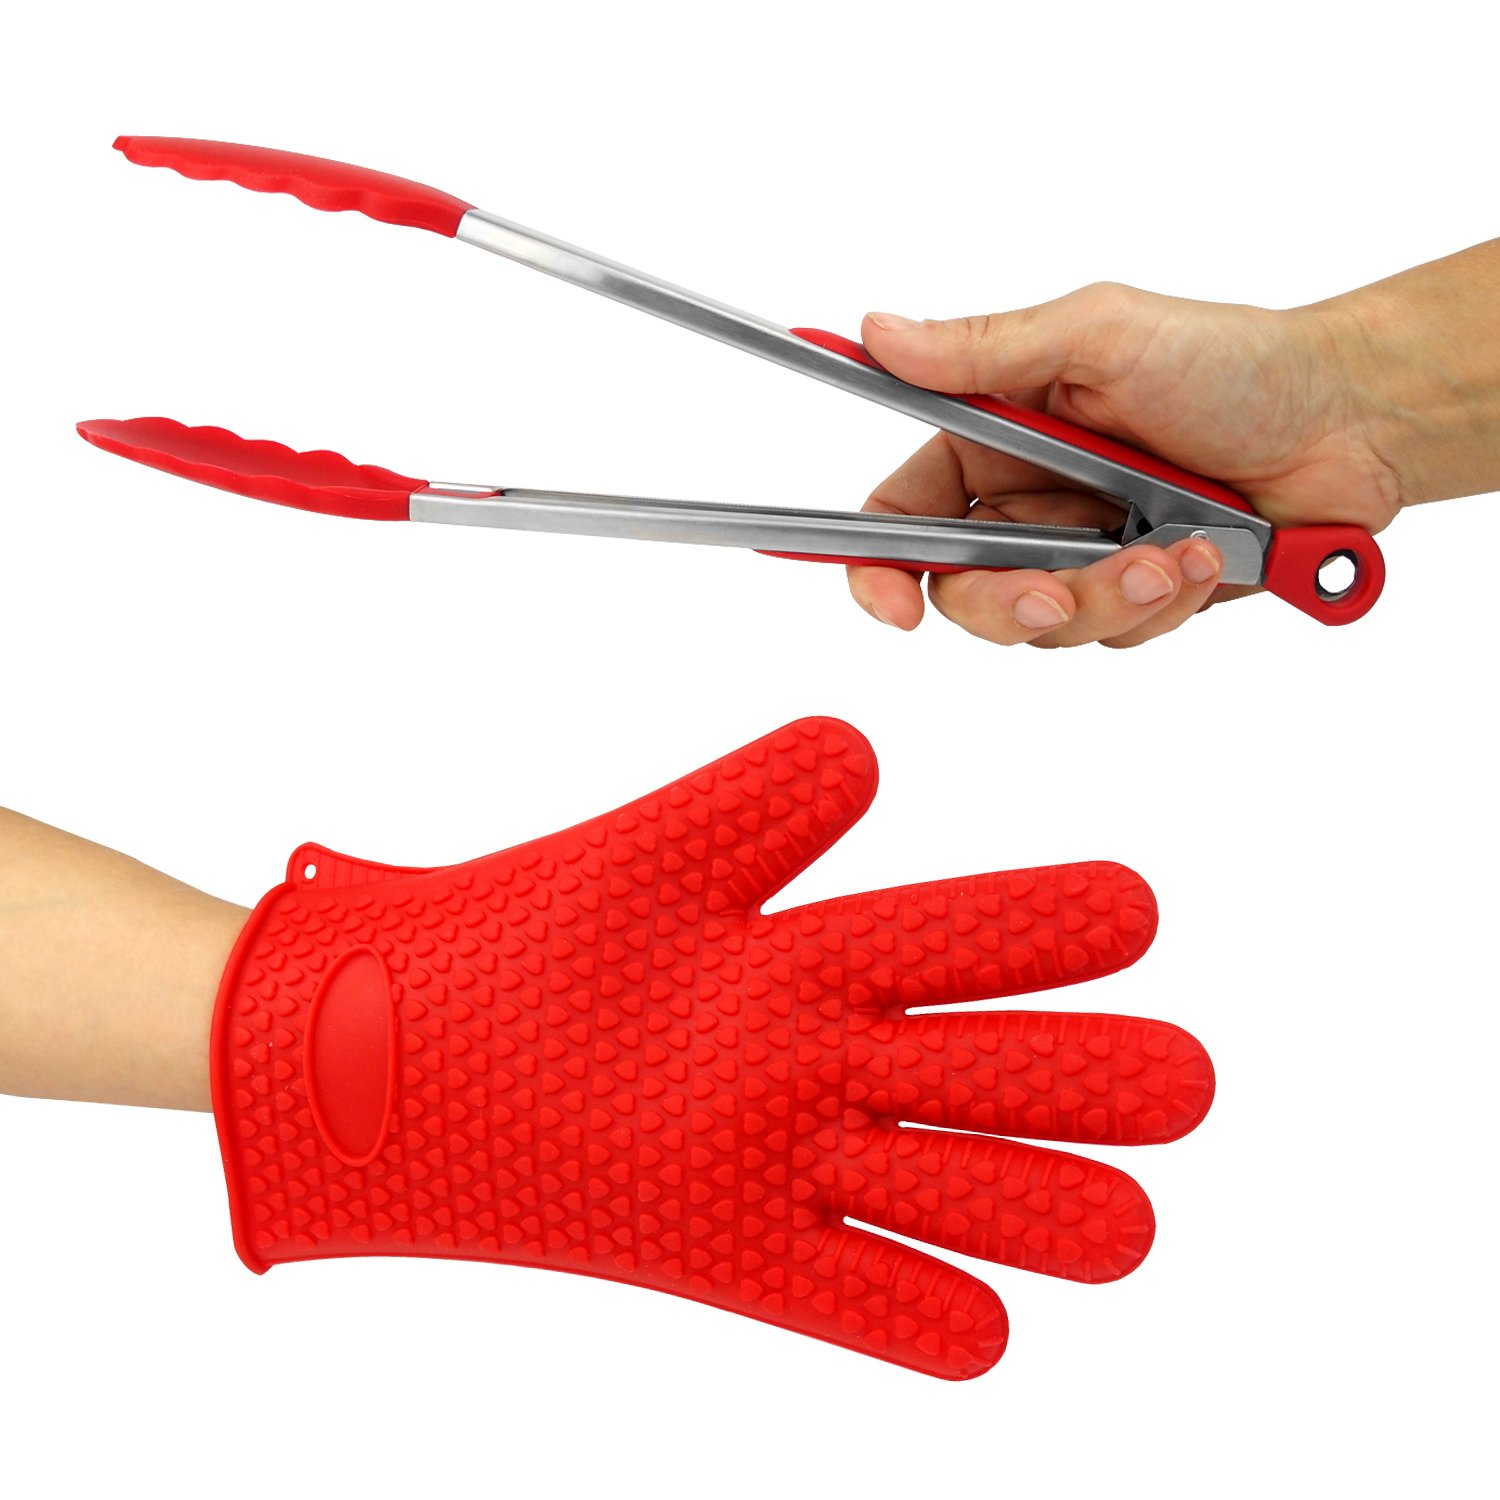 Just-f-Care Heat Resistant Grilling BBQ Useful Set, Silicone Glove for Cooking, Baking, Smoking & Potholder, Unisex Size & Stainless Steel Kitchen Food 12'' Tongs, Best Gift, Red, 2 Piece